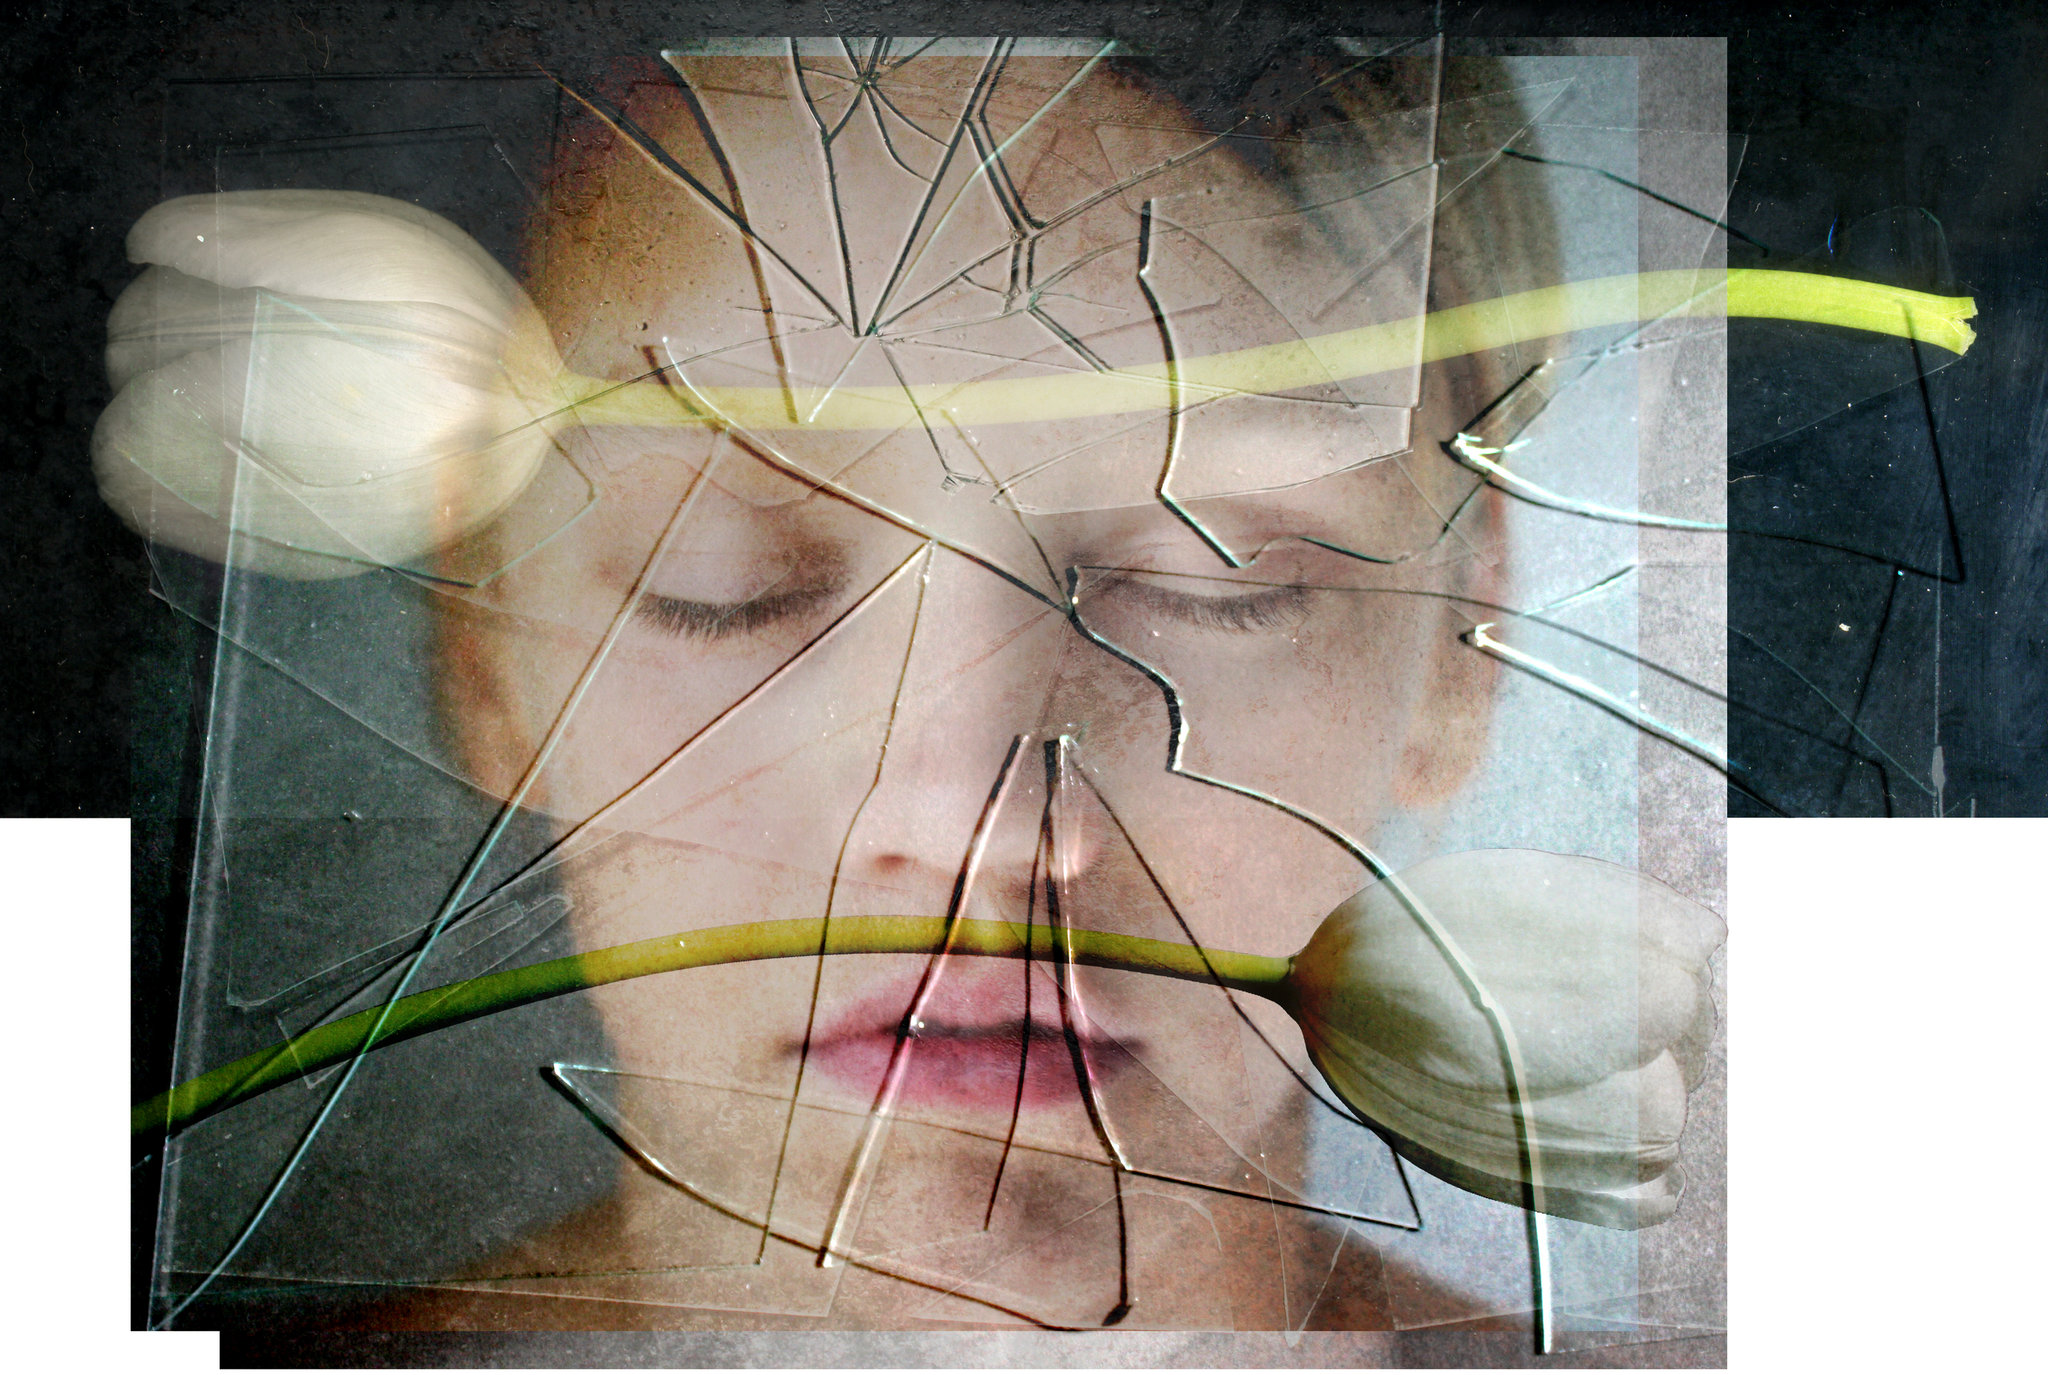 a study in traumatic brain injury A new study found a traumatic brain injury resulted in years of headaches and migraines for 4 out of 5 people while headache is the most frequently reported symptom following a traumatic brain injury (tbi), it can continue to impact patients five years after the injury occurred.